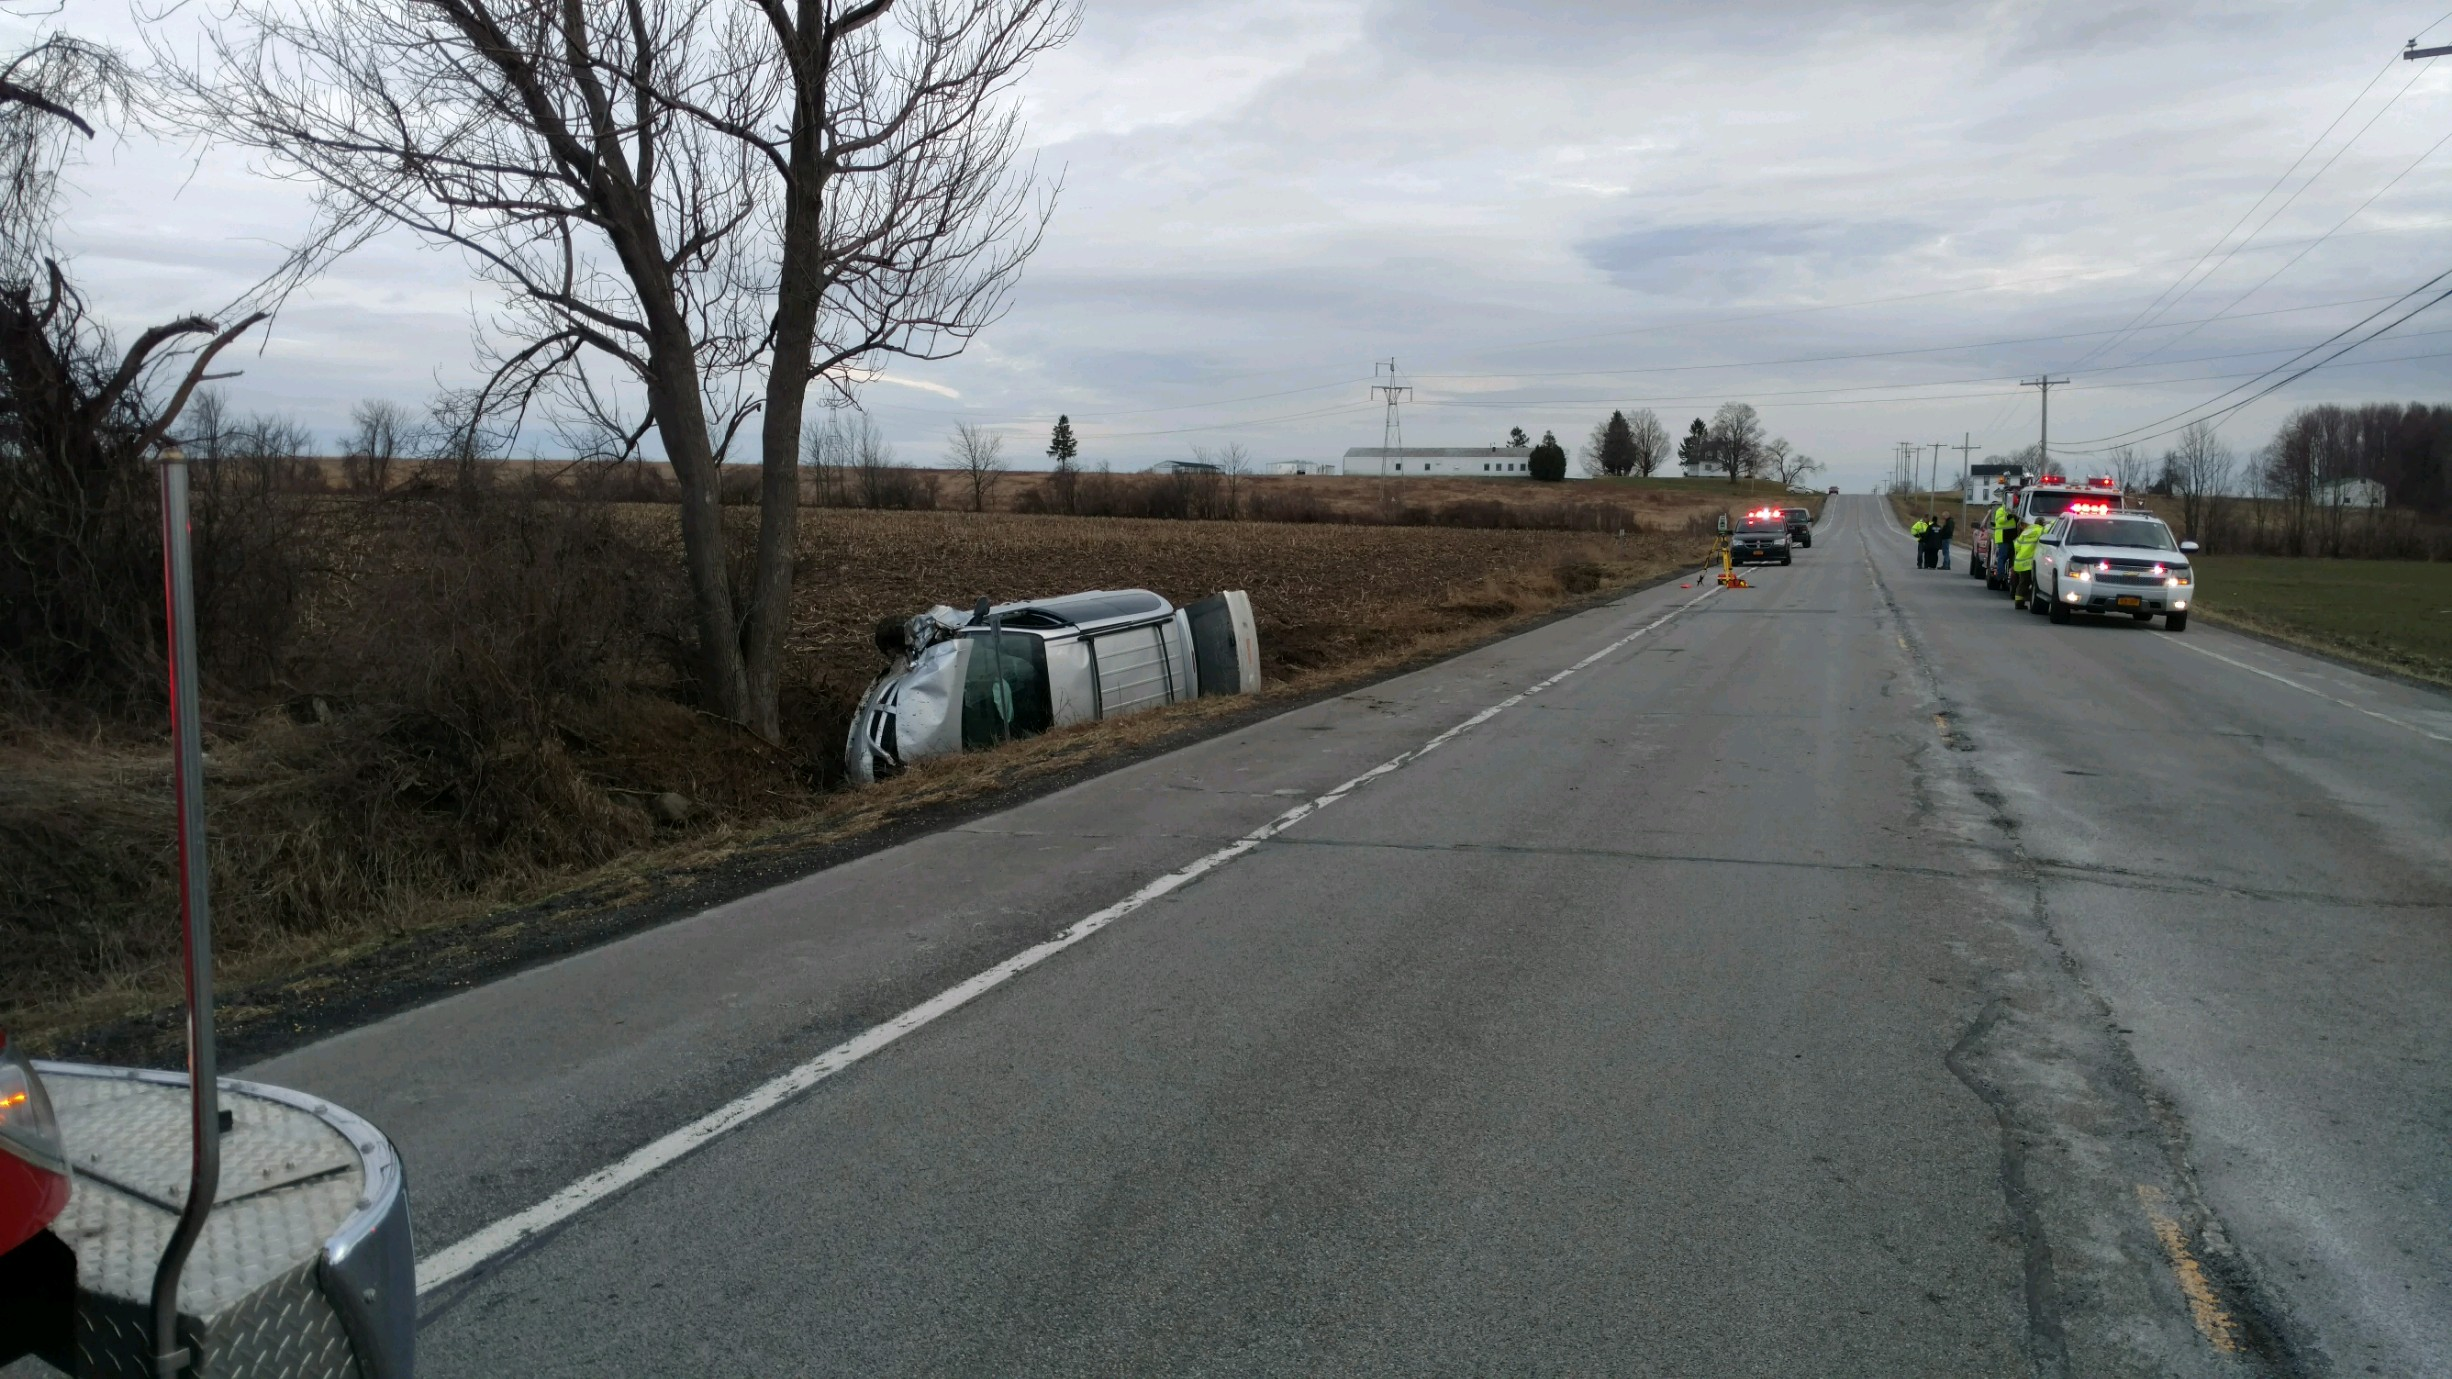 The scene of Monday's fatal accident in Genesee County. (Photo provided by State Police)